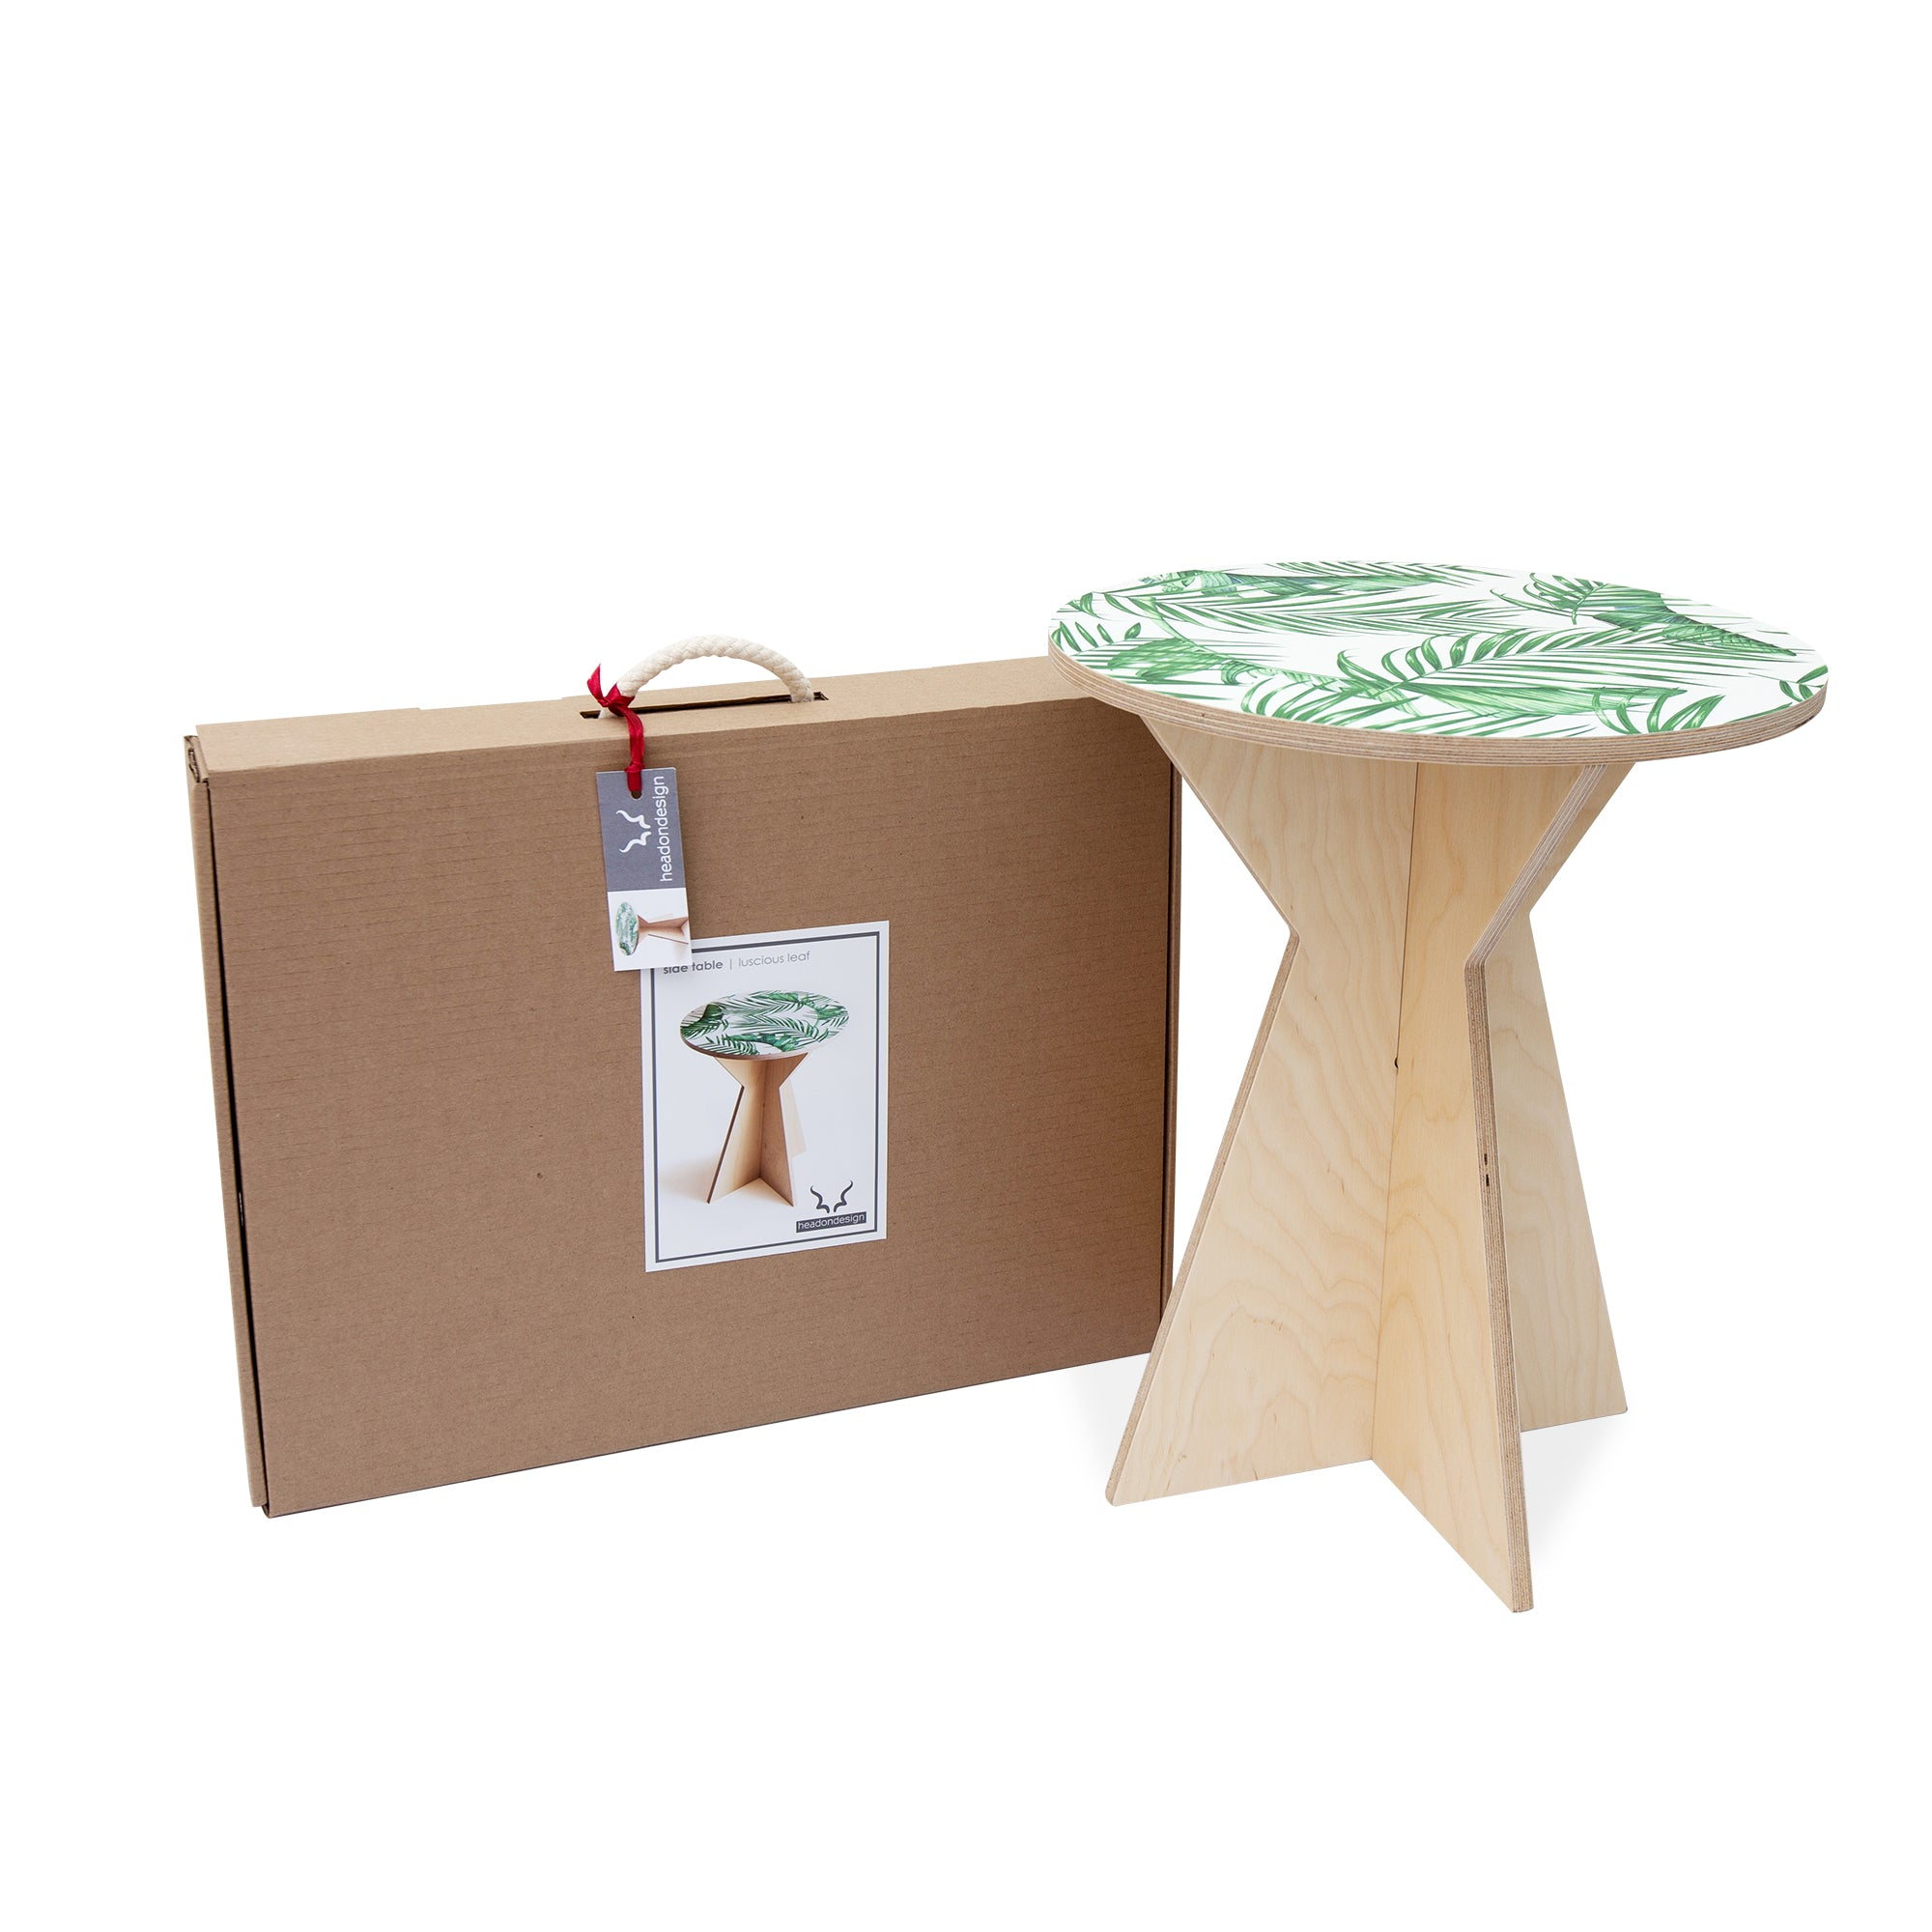 Side Table with Leaf print